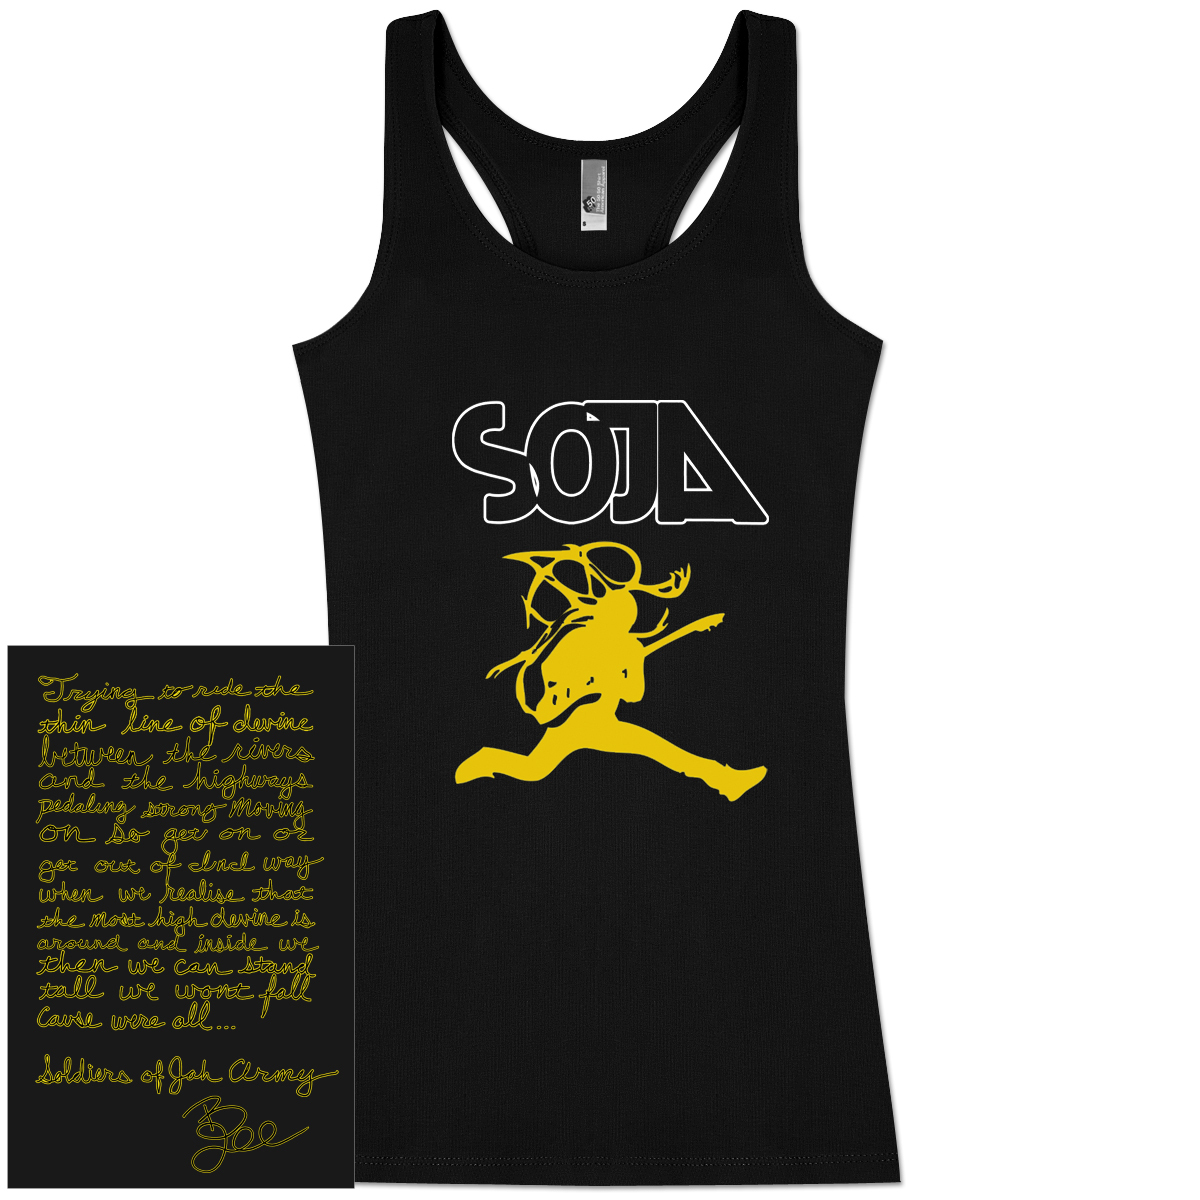 SOJA - Bobby Lee Jumpman Ladies Black Tank